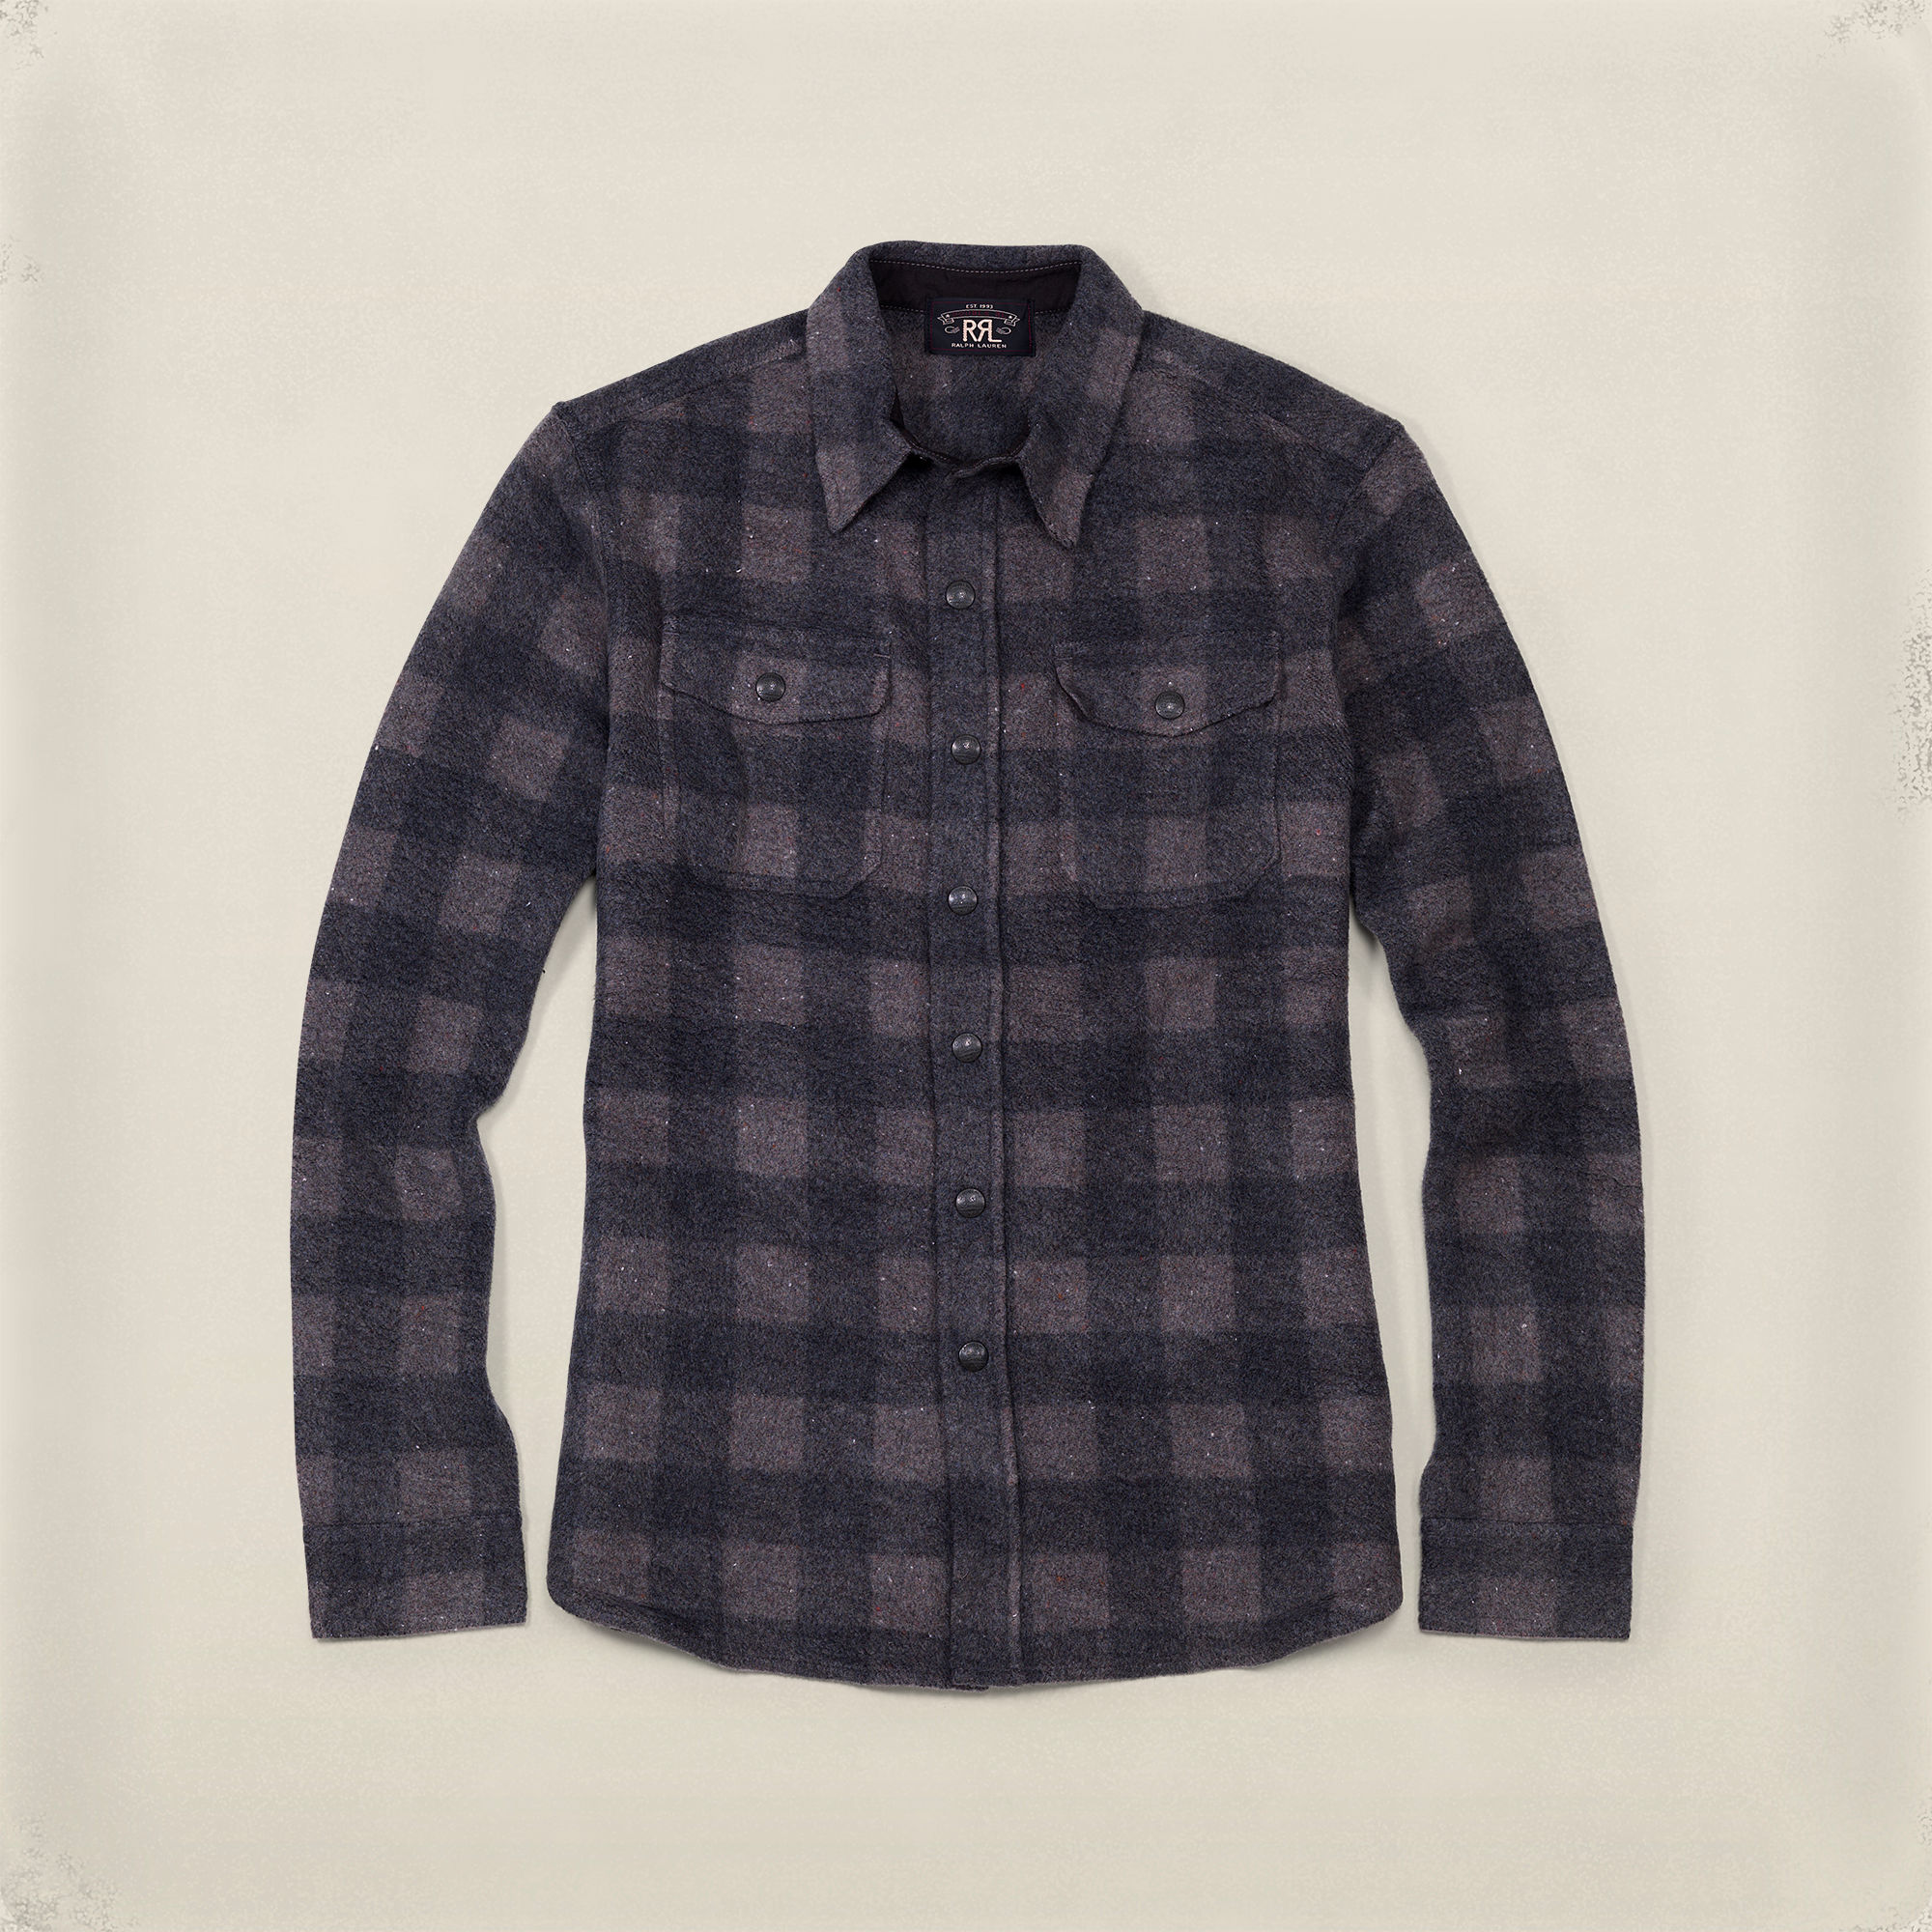 ed00e5cb The Official RRL Thread   Page 1687   Styleforum